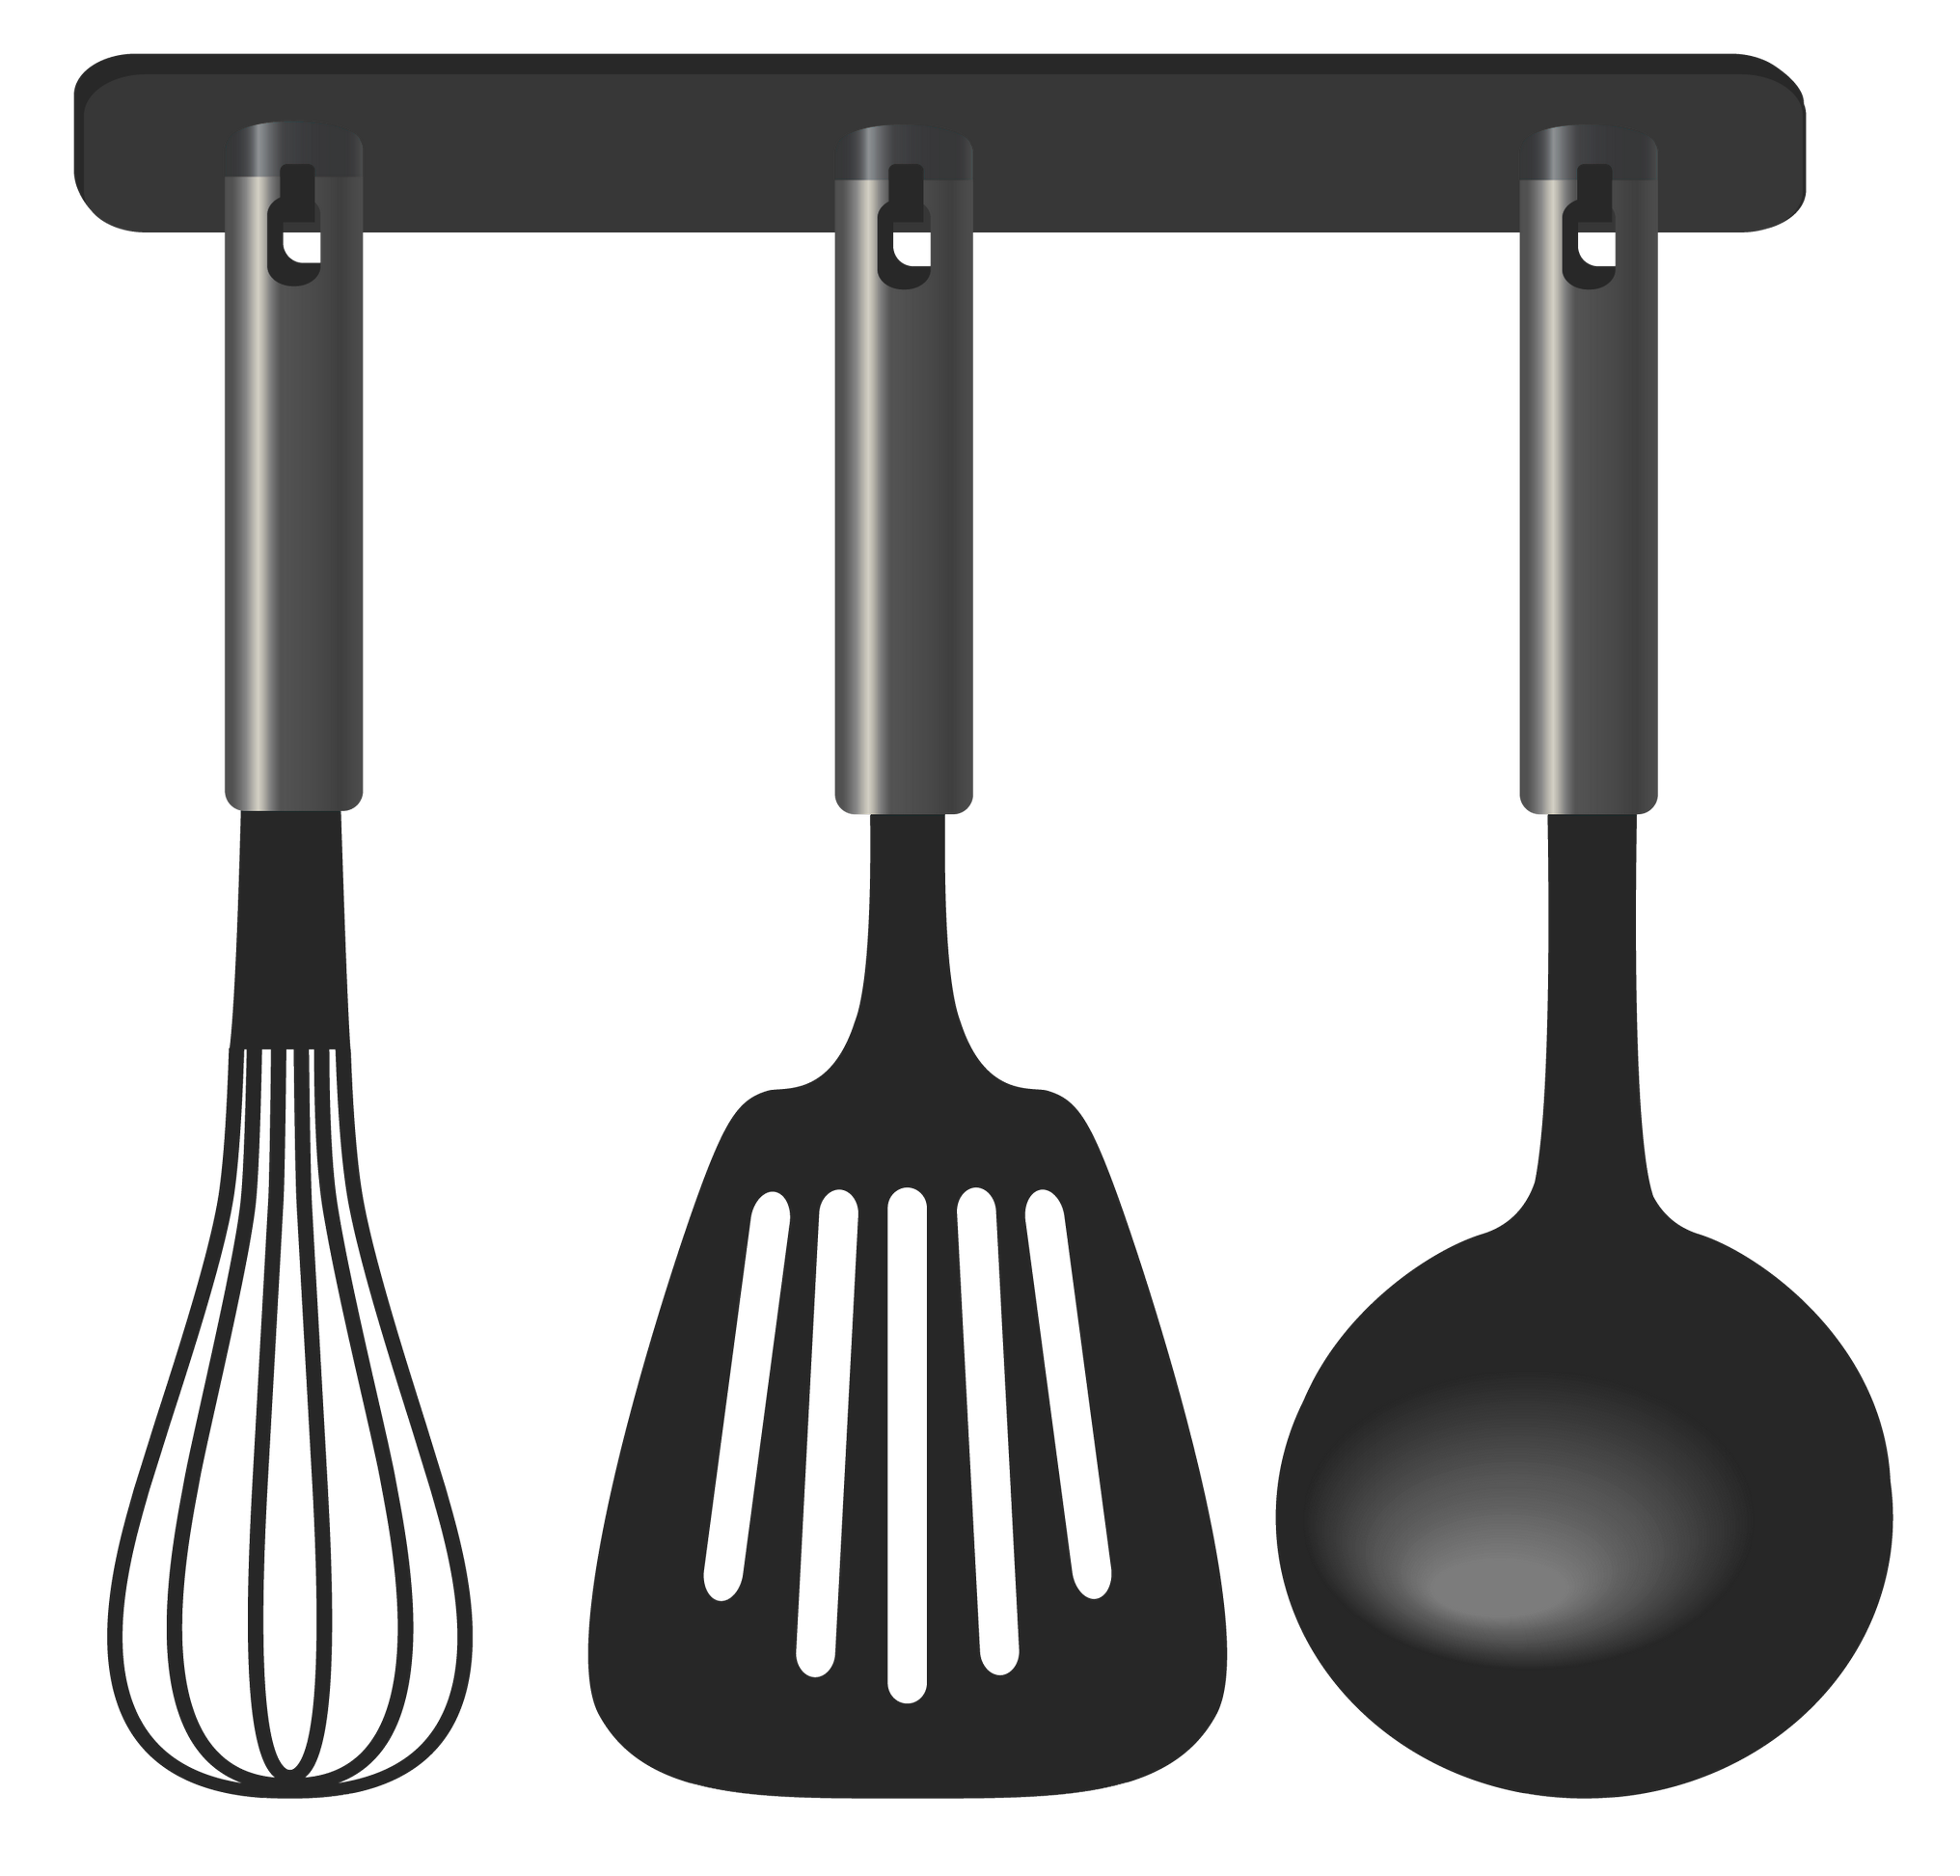 Open clipart kitchen tool #15